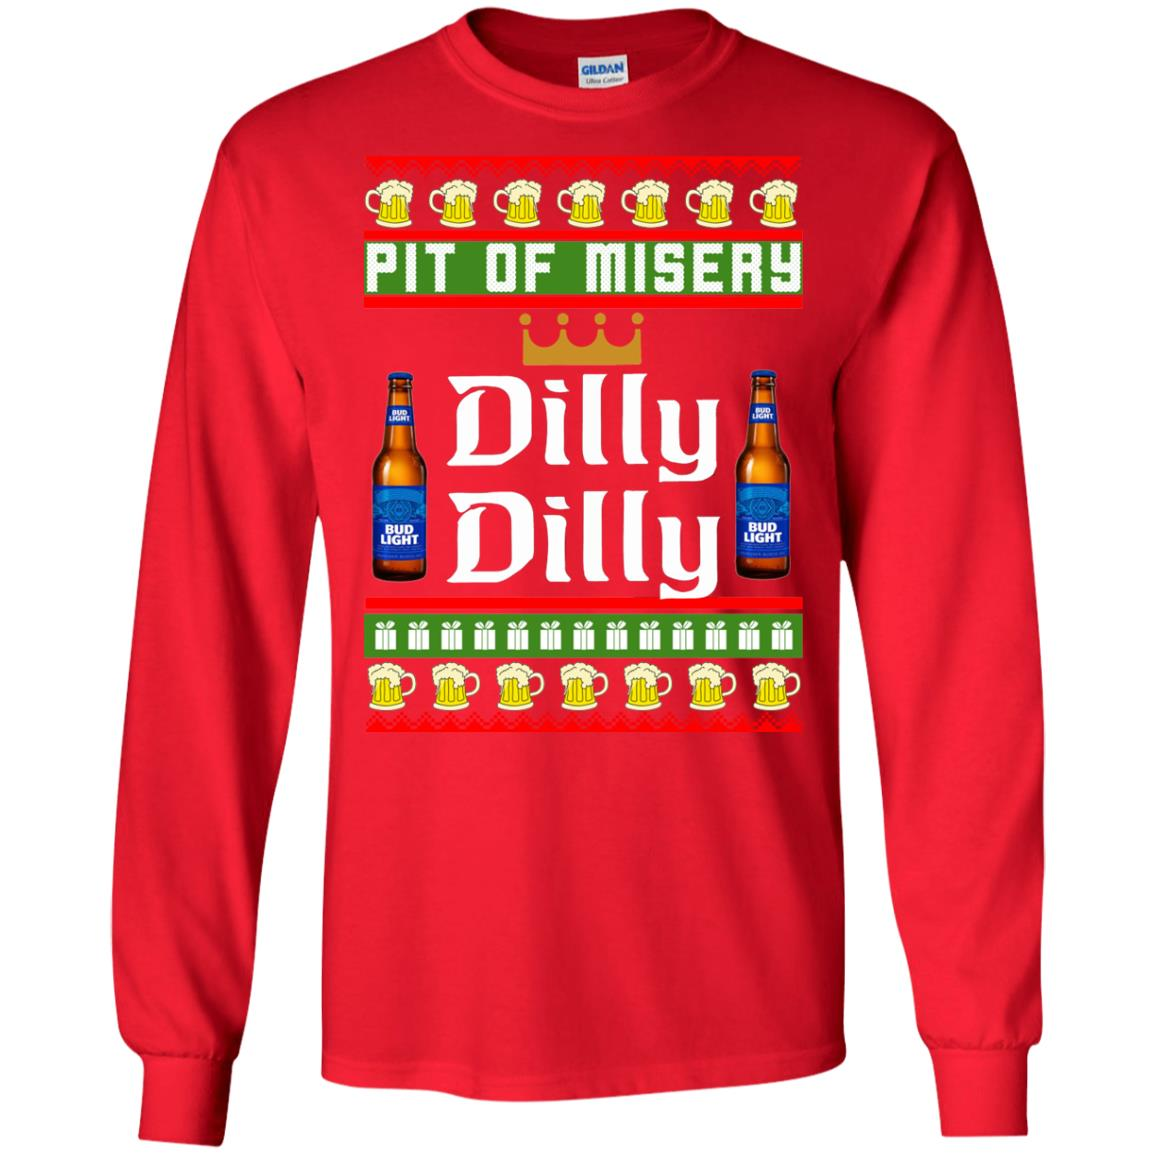 image 6380 - Pit Of Misery Dilly Dilly Ugly Sweater, Long Sleeve